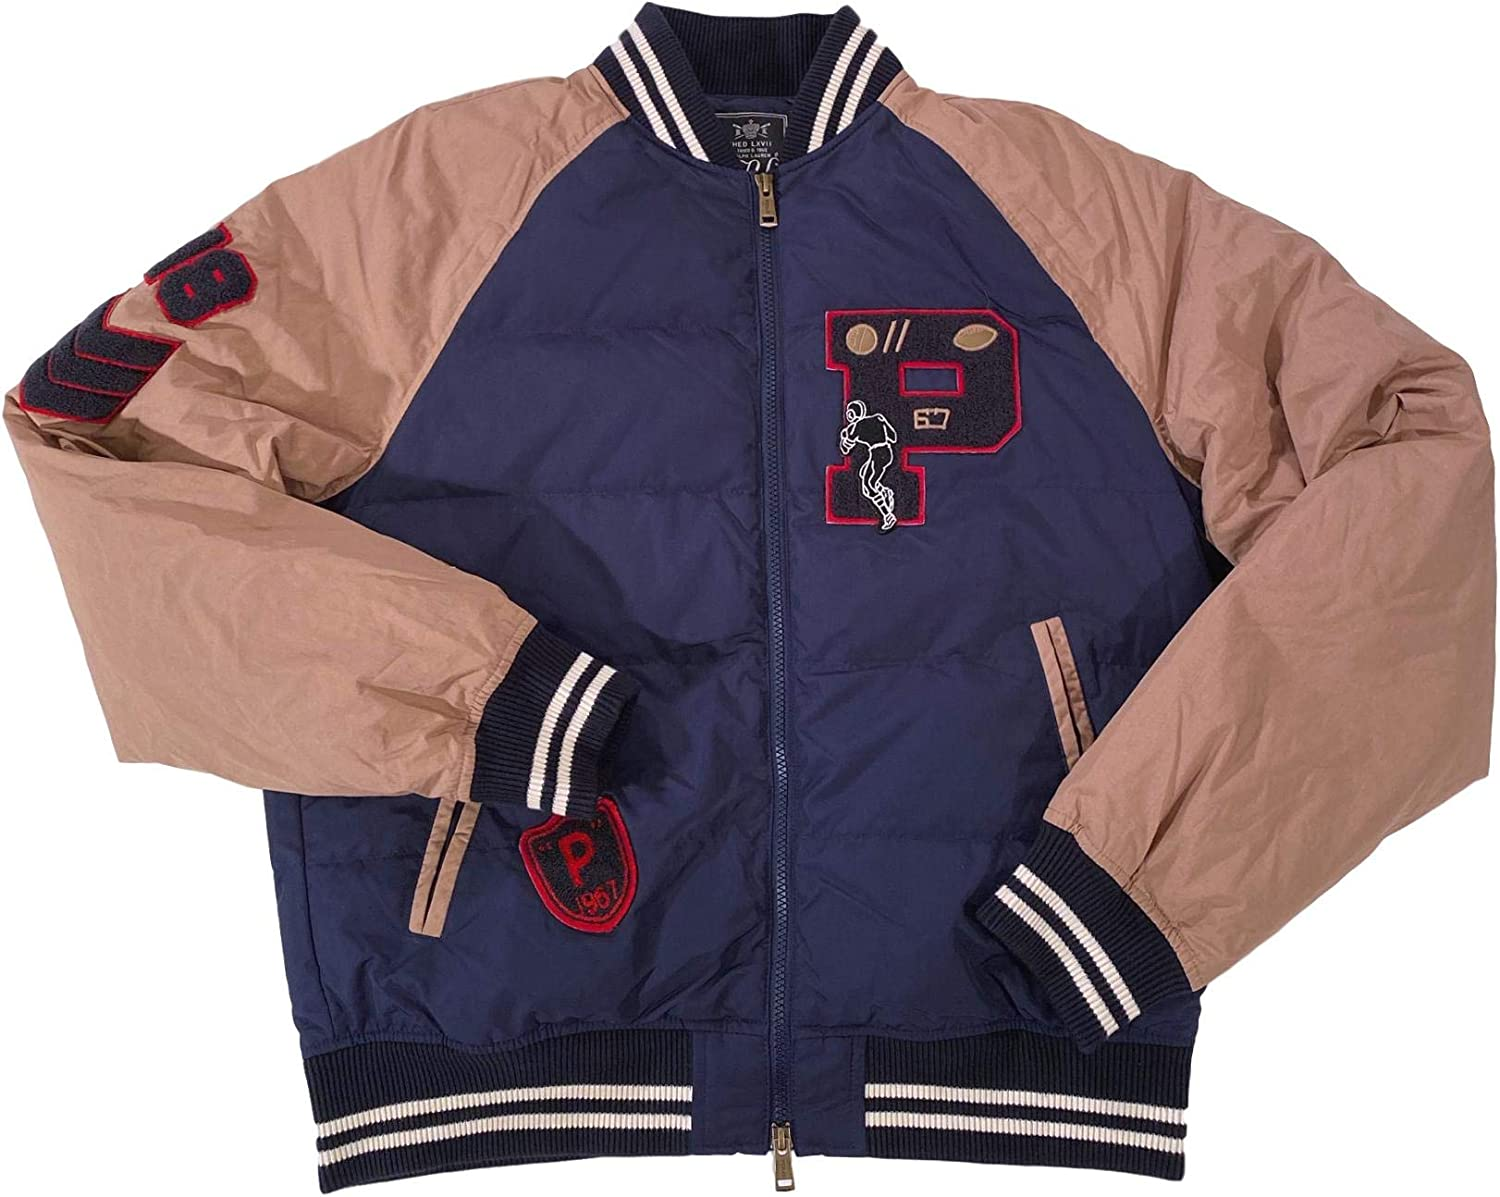 Men's Collegiate Varsity Football Letterman Chenille Patched Casual Bomber Jacket